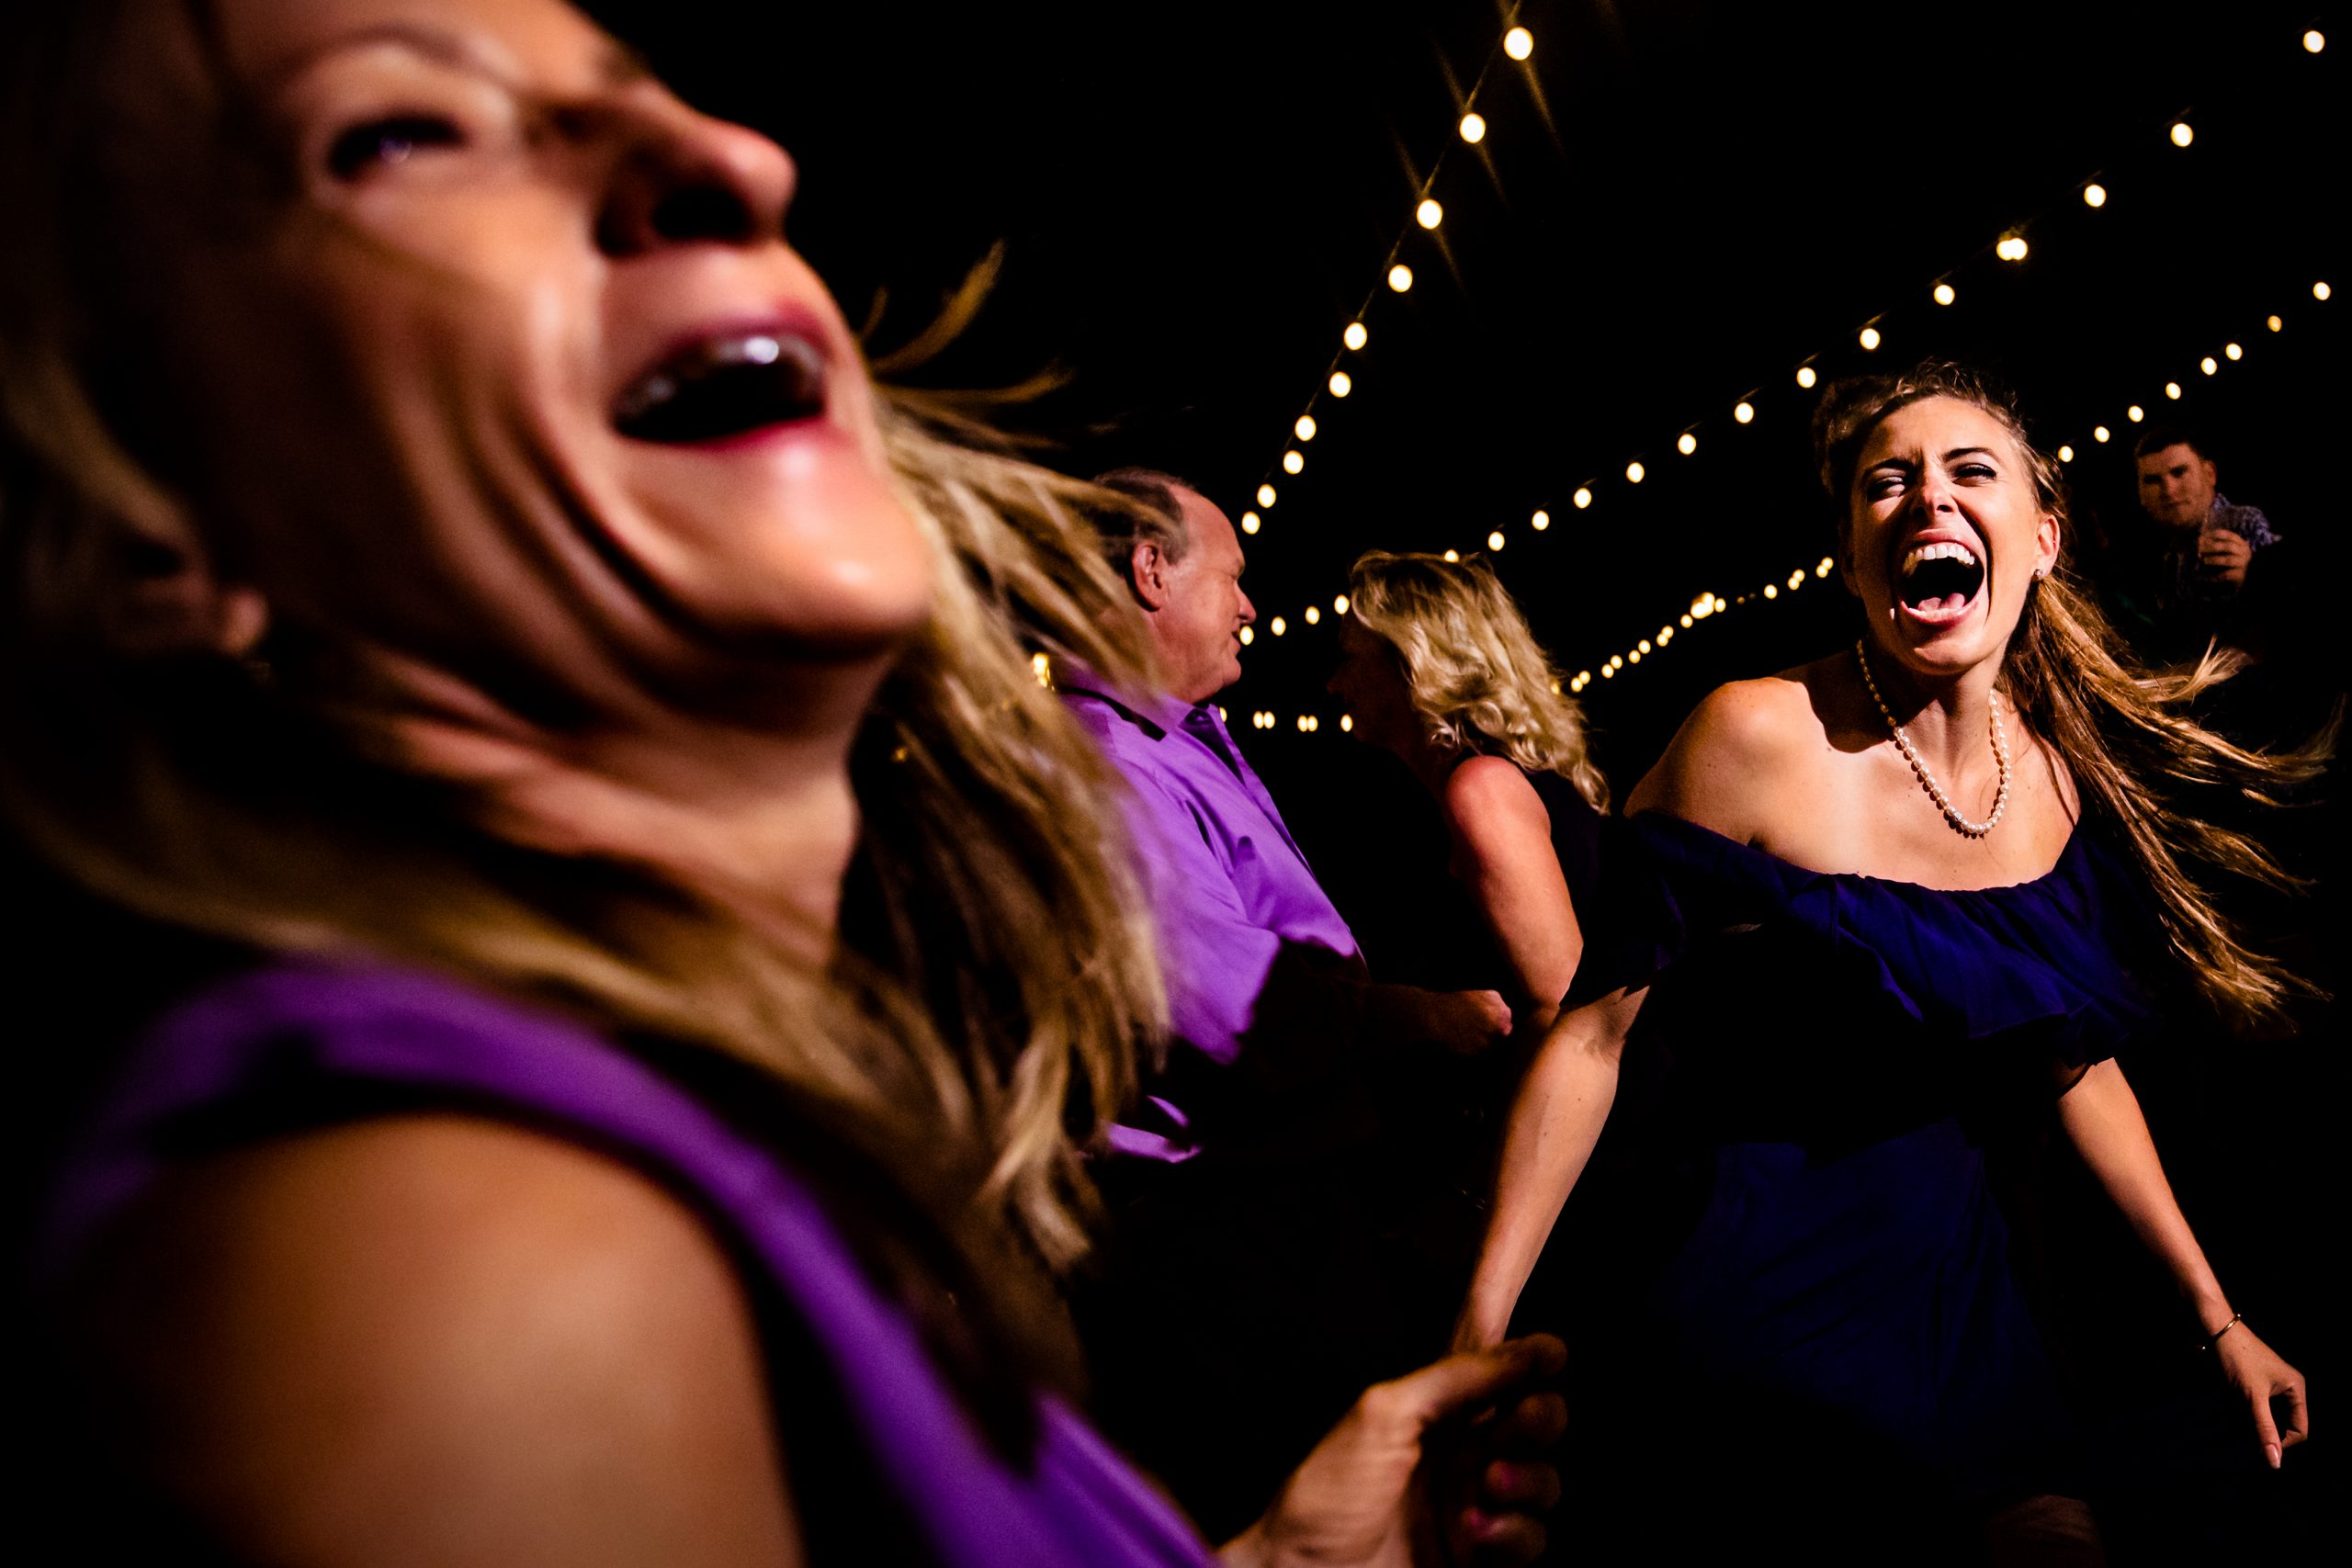 Wedding guests dance happily at a wedding reception party